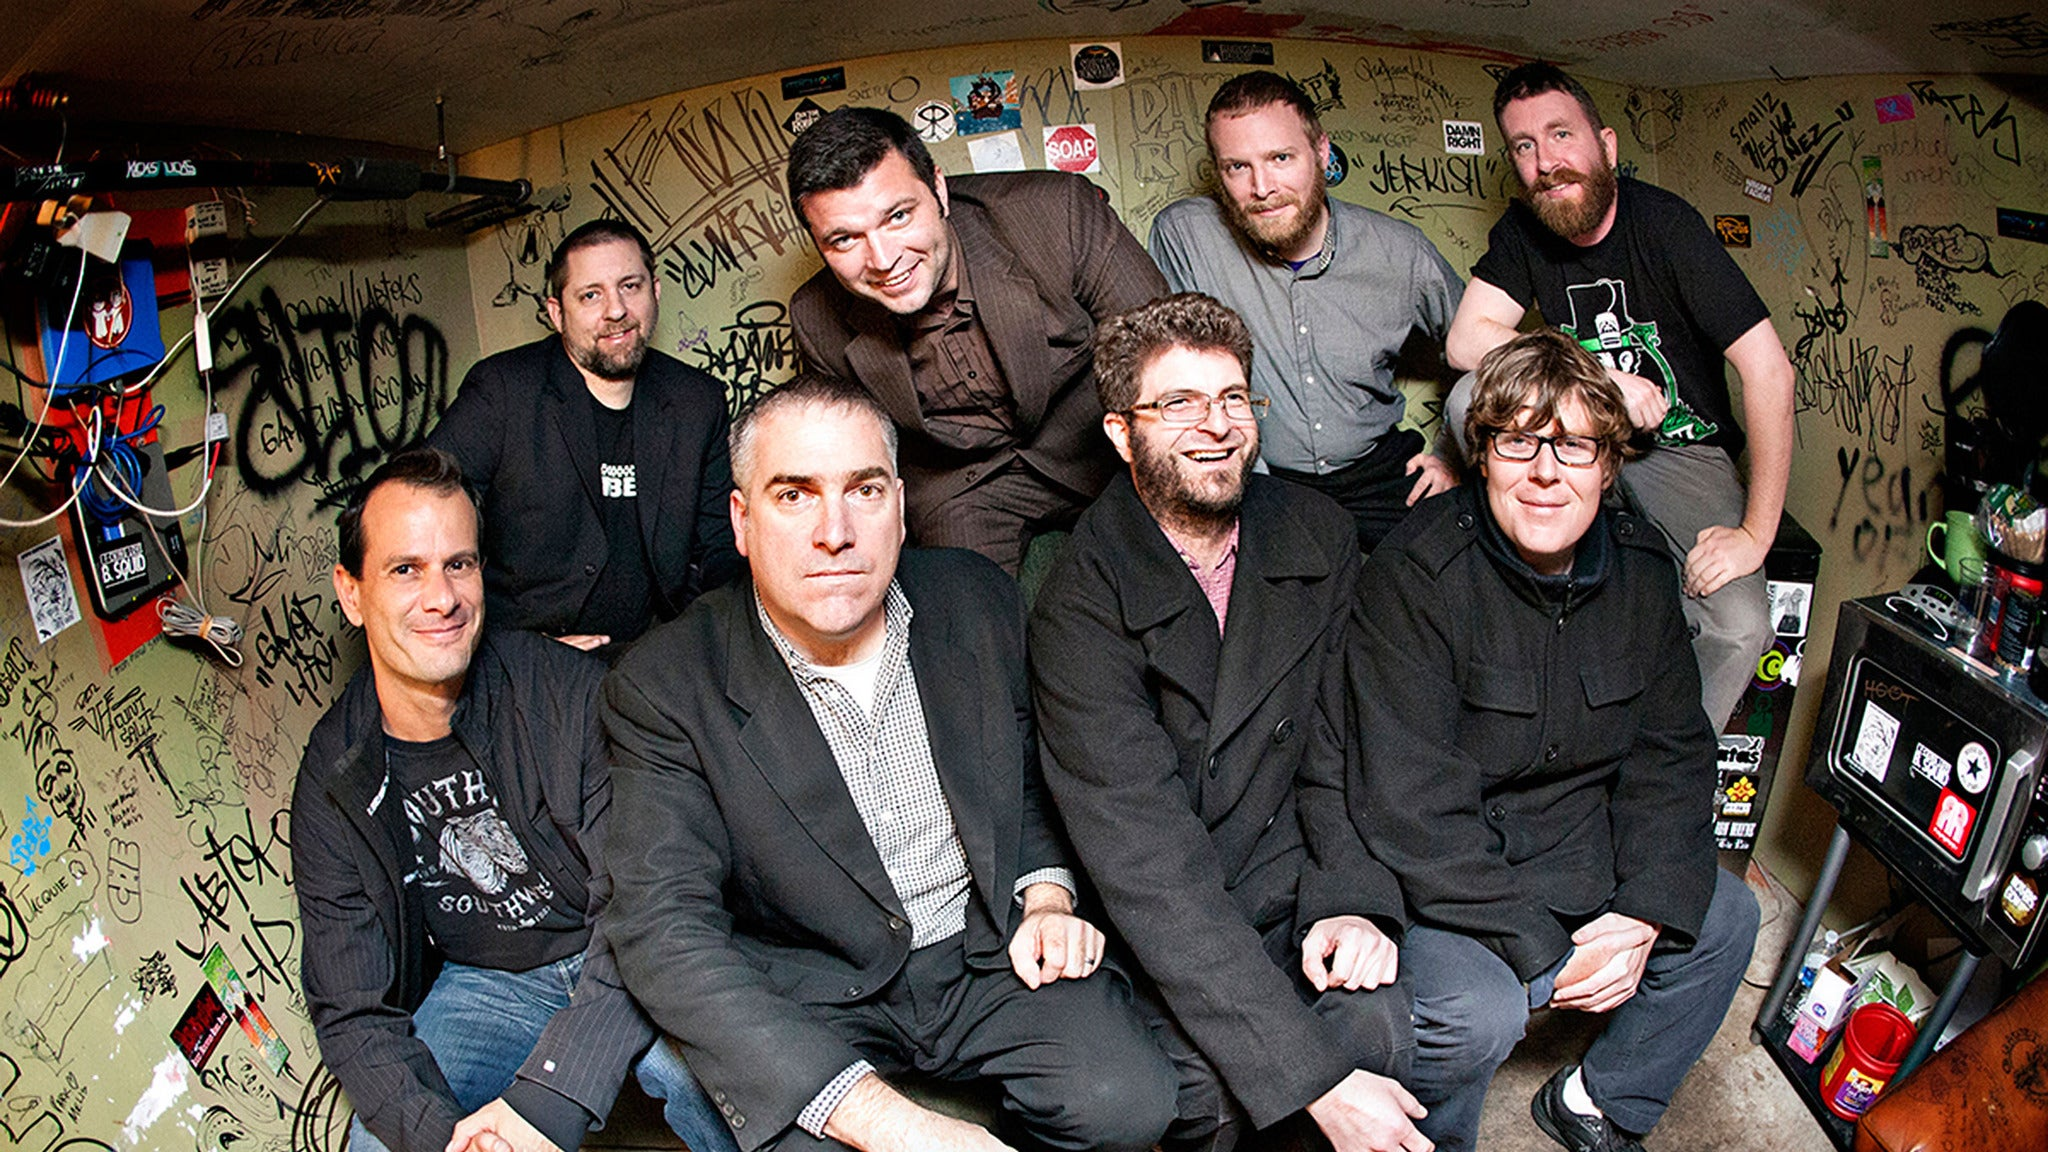 Pietasters w/ Big D and the Kids Table at 9:30 Club